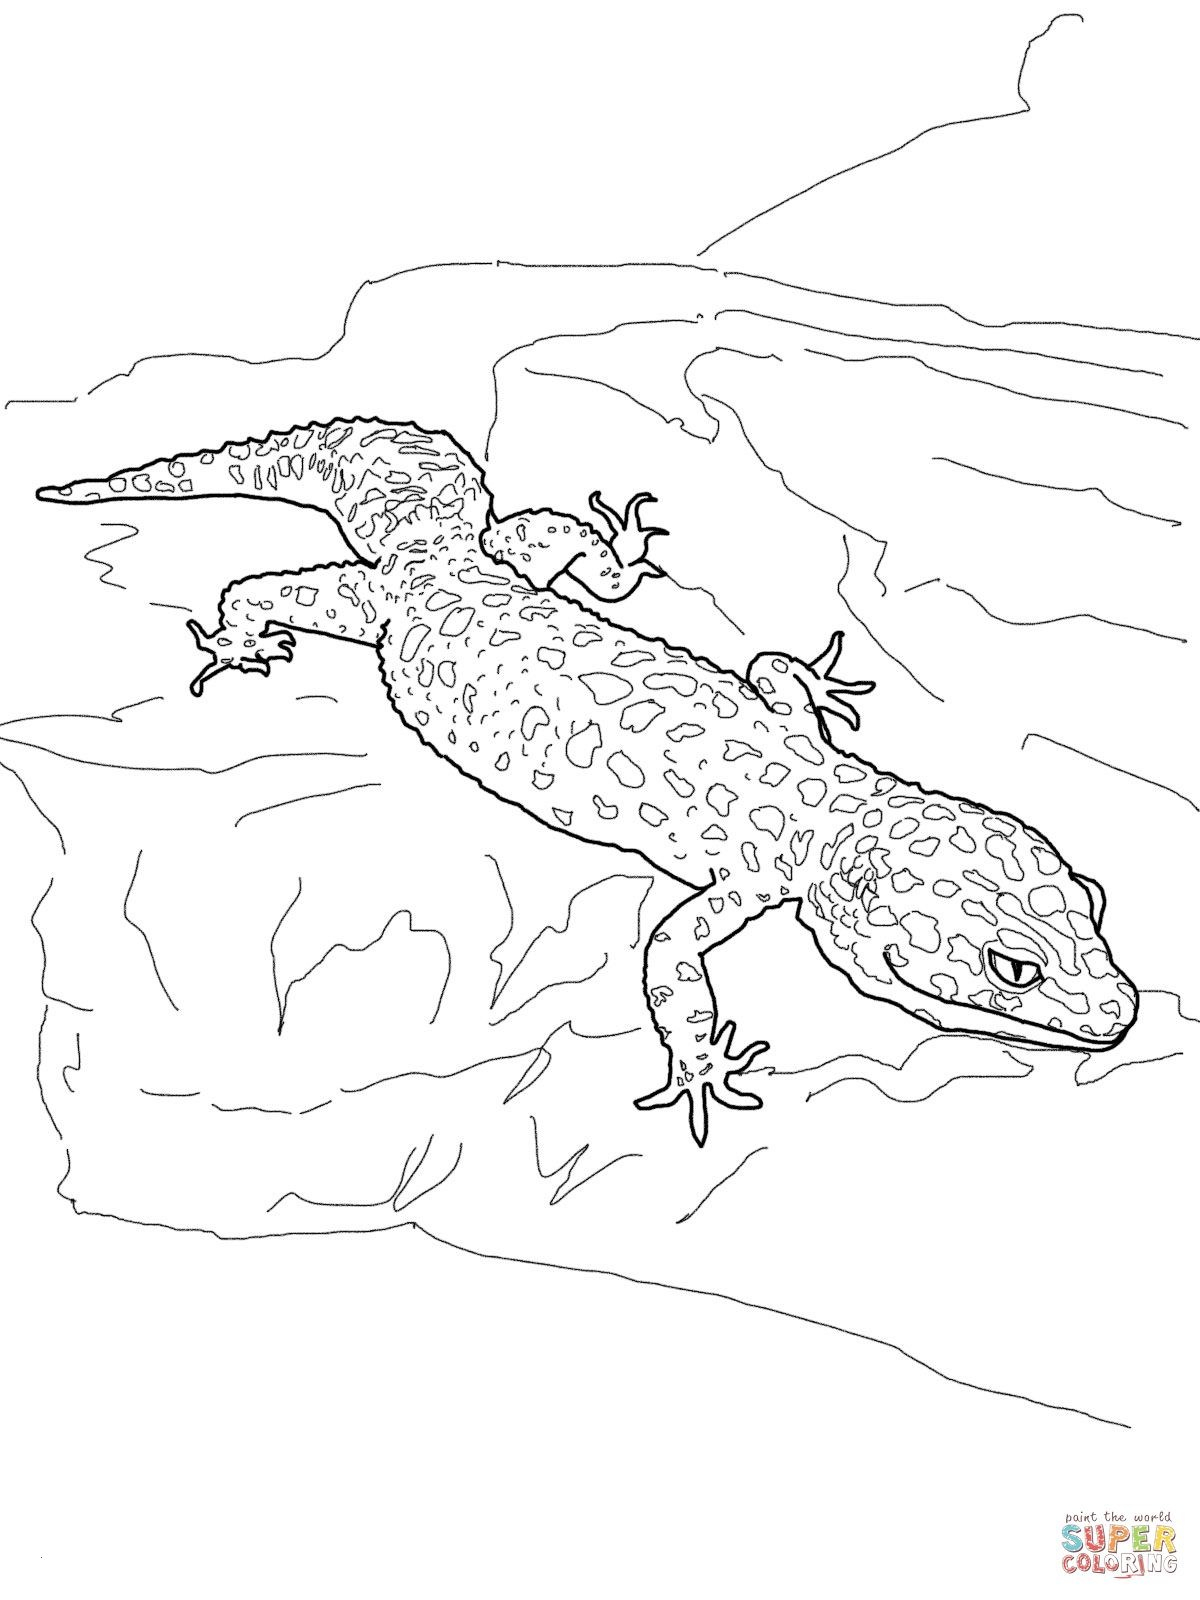 gecko coloring pages Collection-New Gecko Coloring Page Coloring Pages Neu Camelion Ausmalbilder 10-e